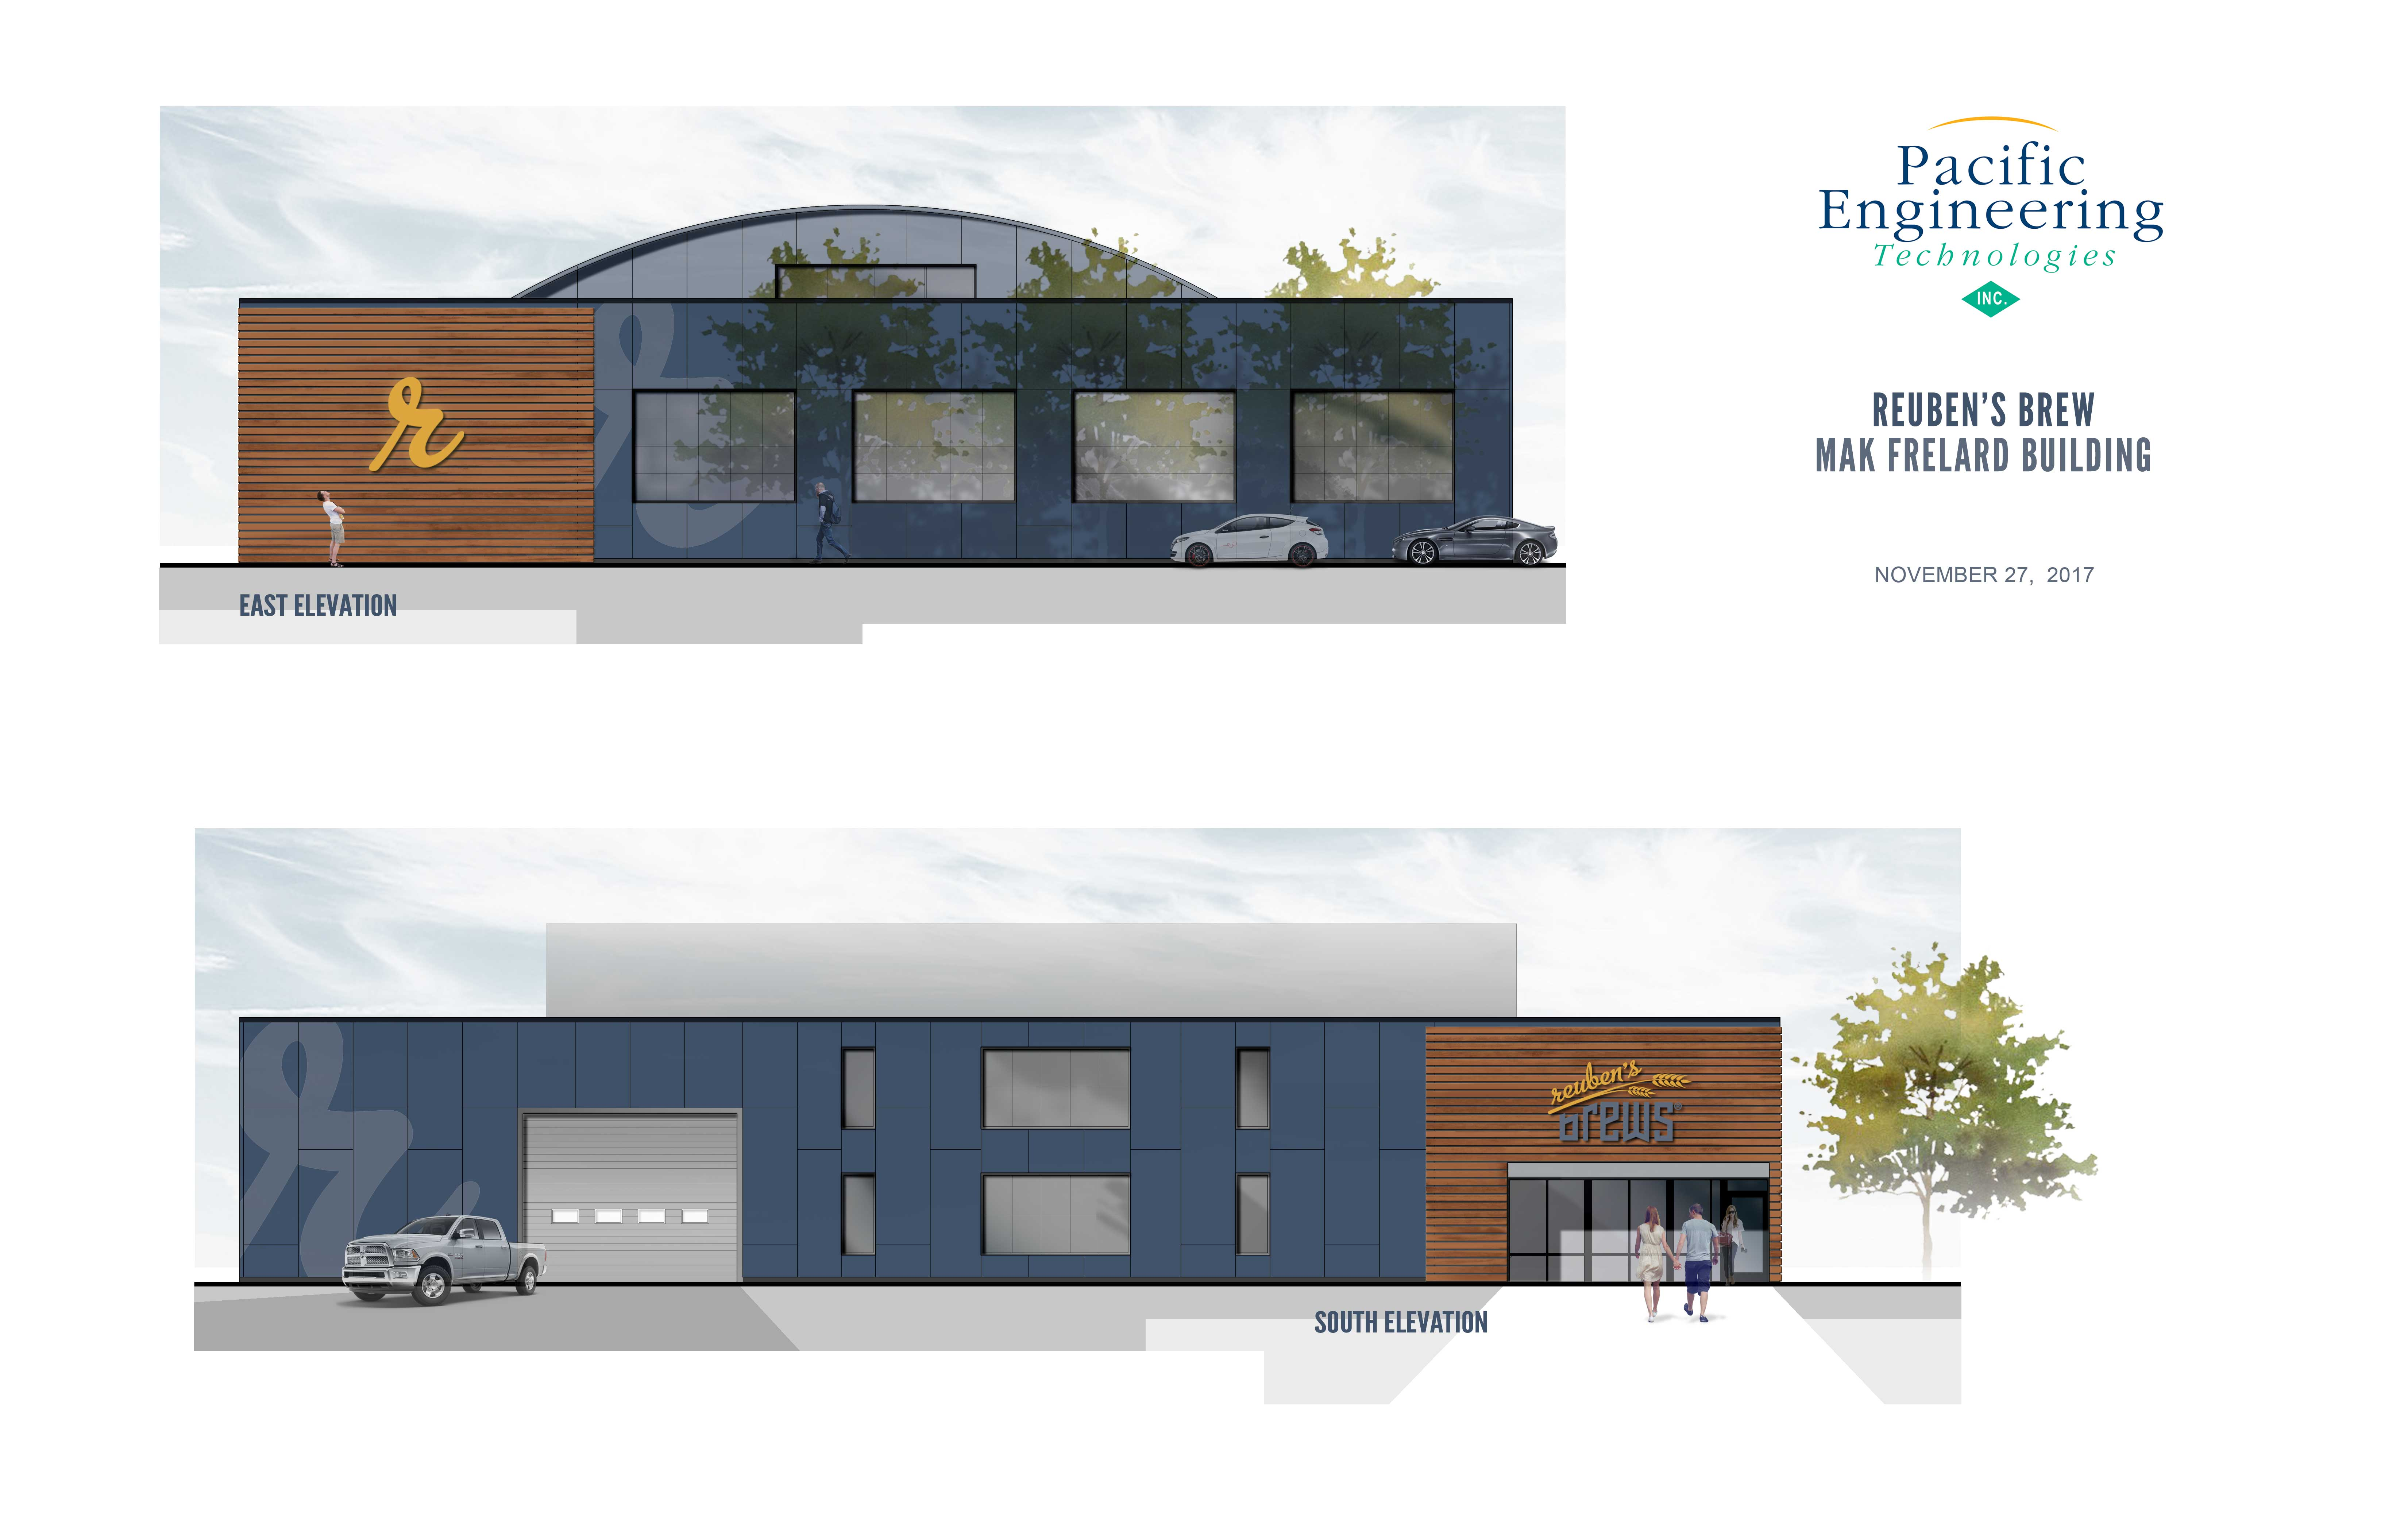 image of Reuben's Brews new brewery courtesy of Pacific Engineering Technologies